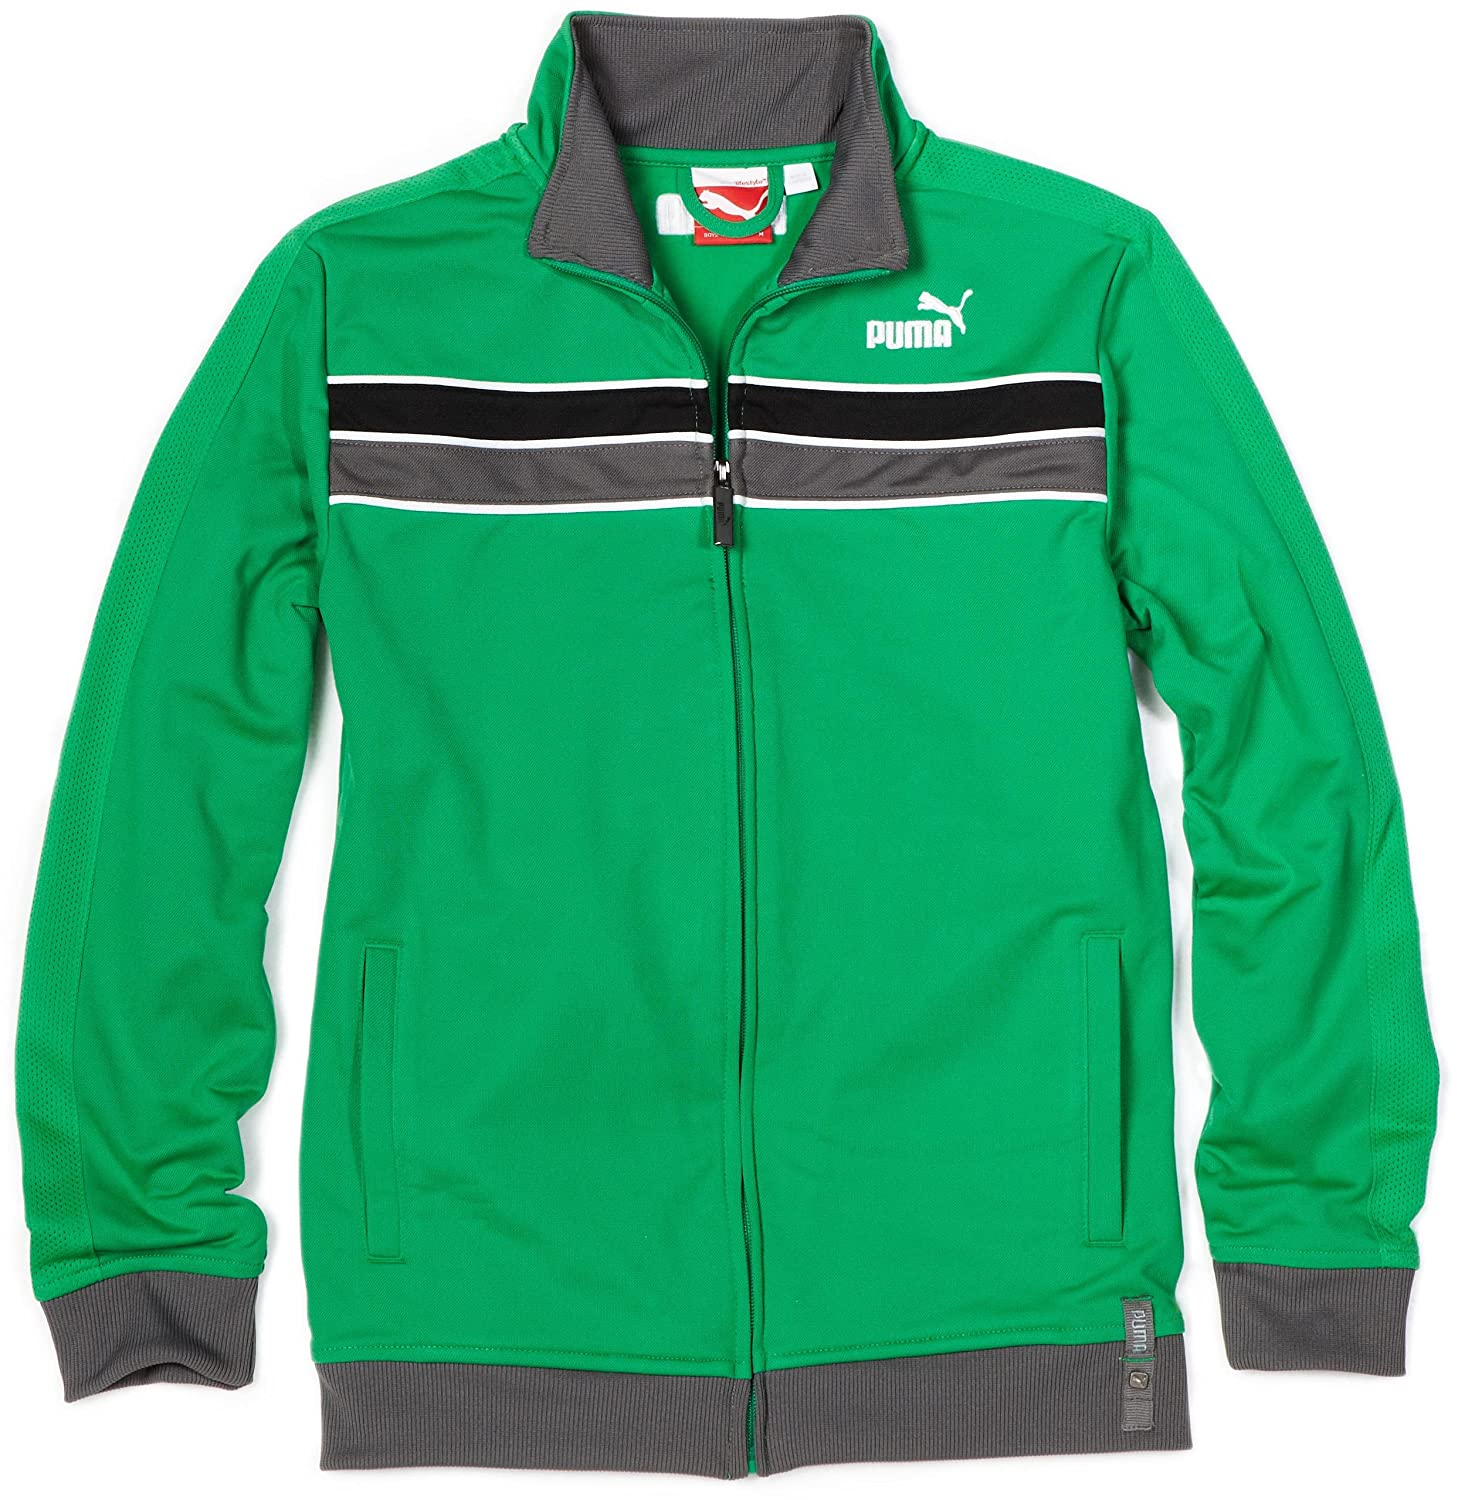 Special Price Clothing Best Buy Puma - Kids Boys 8-20 Linear Track Jacket